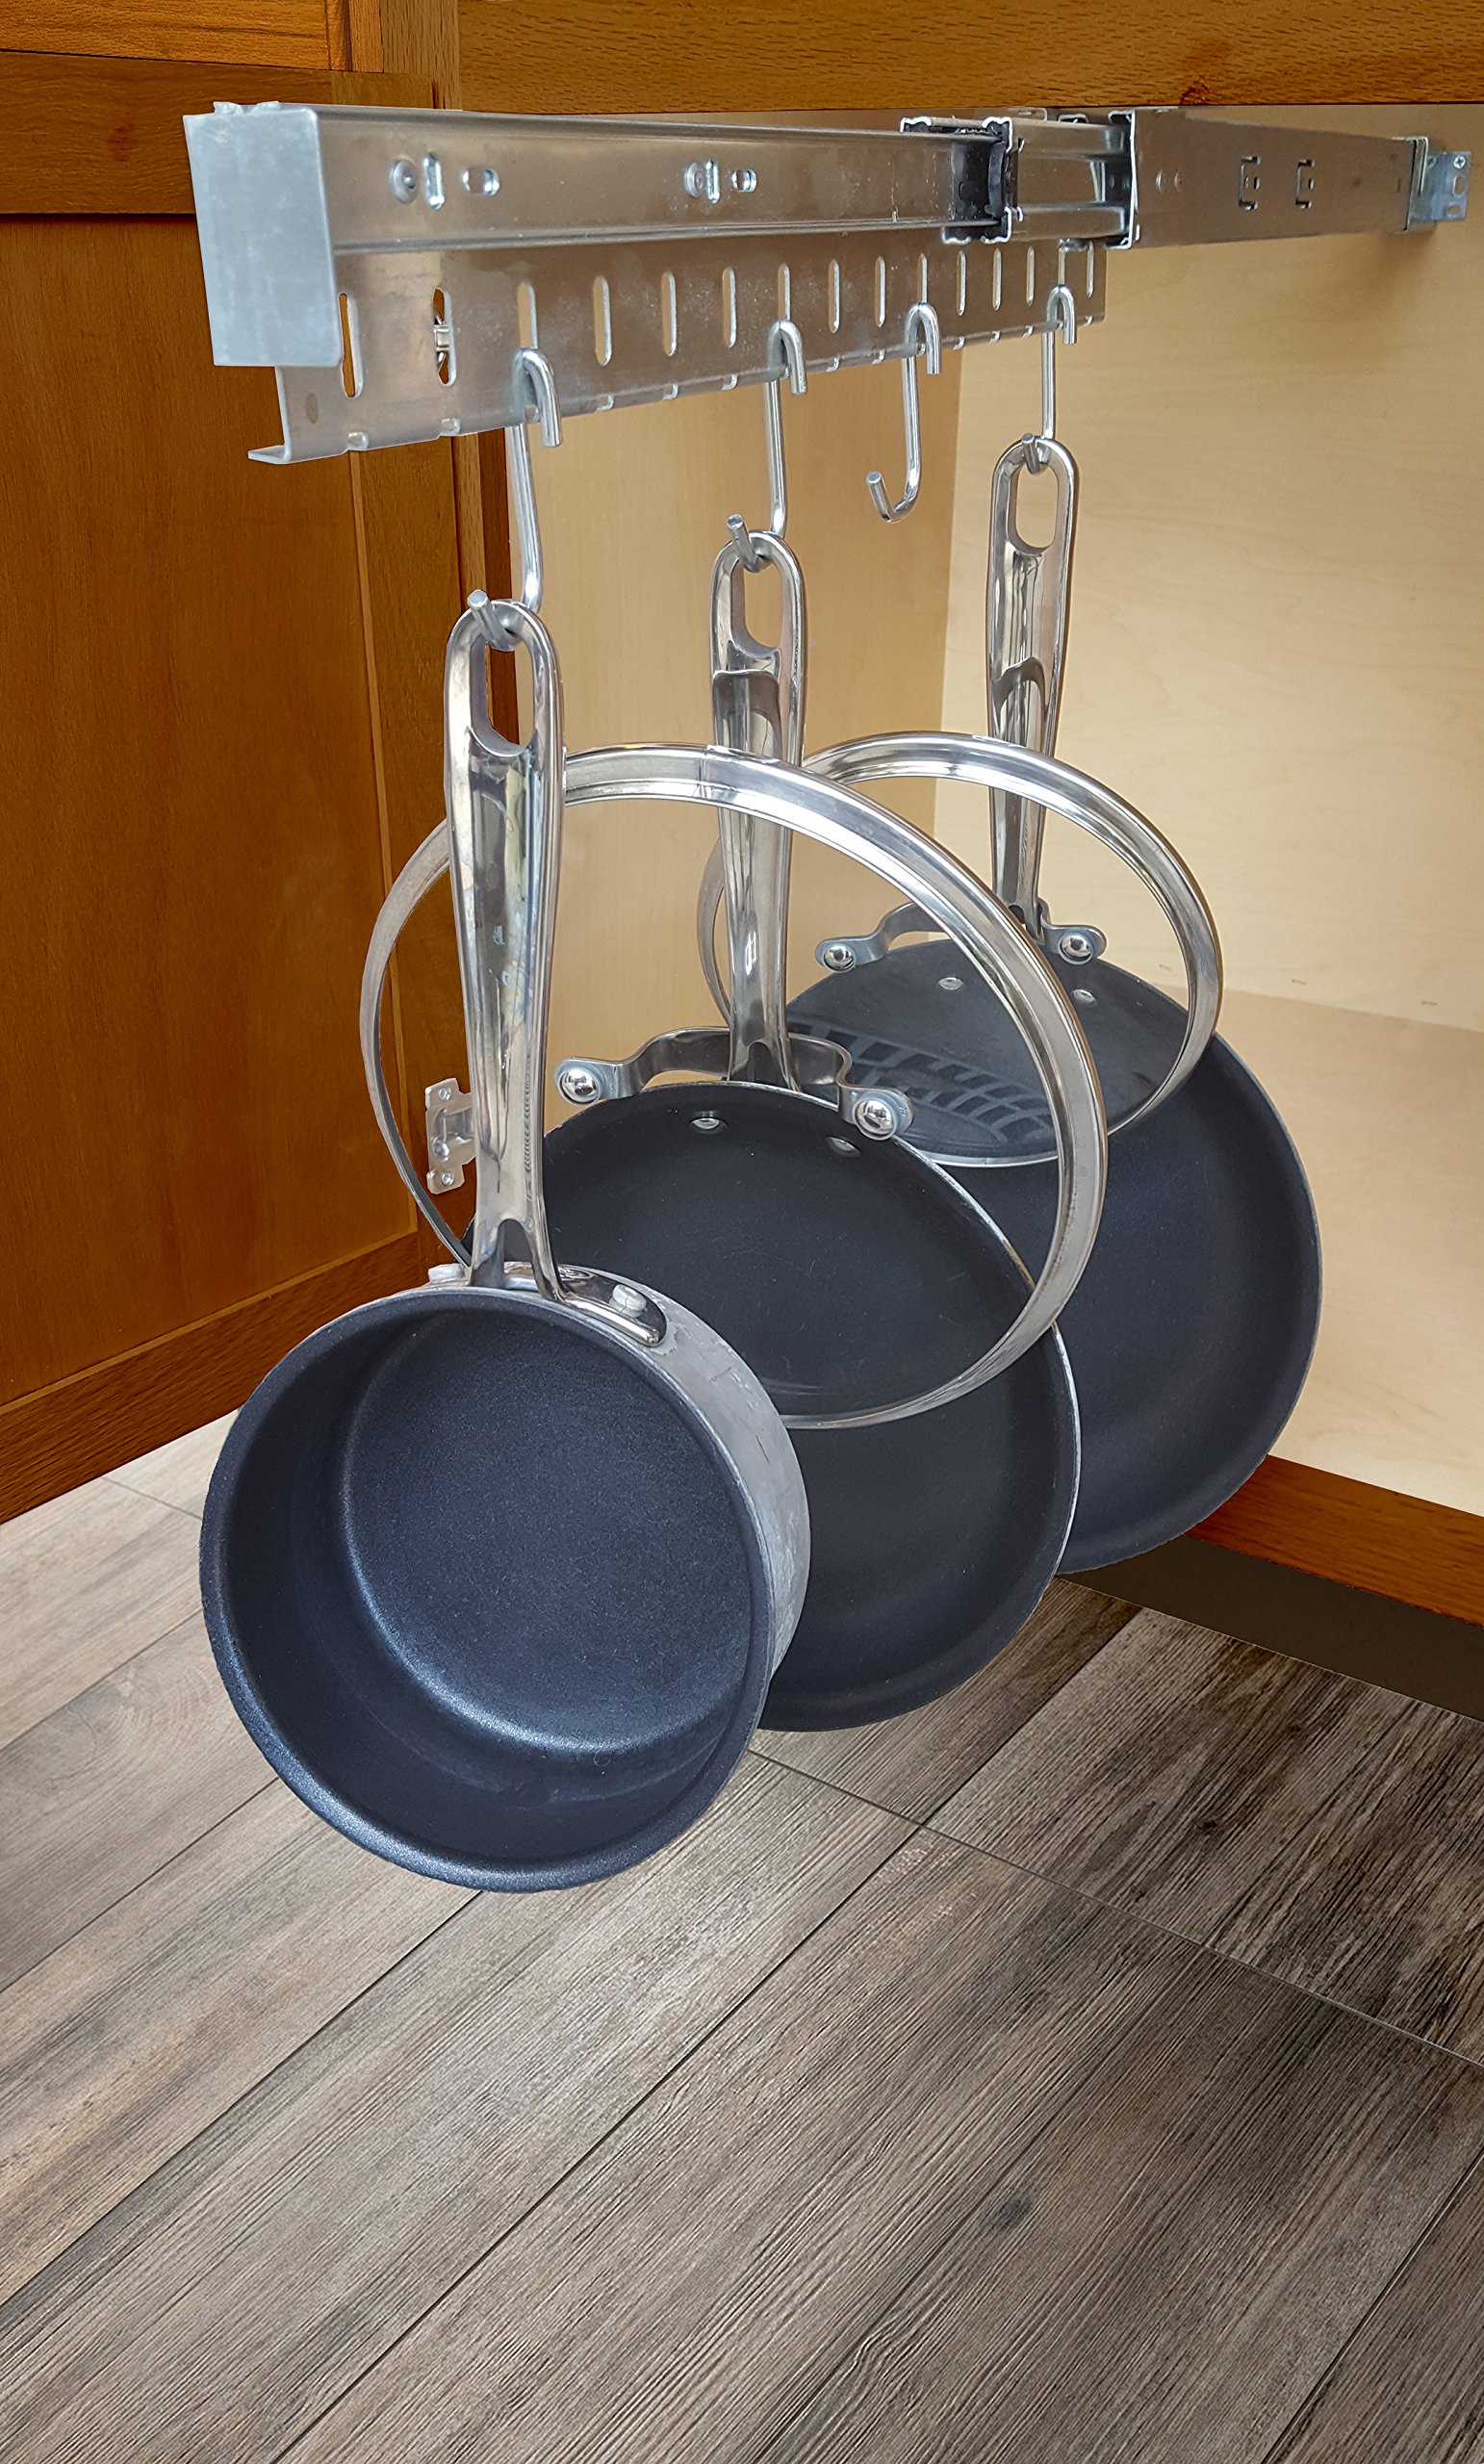 Good Cushion Pan & Lid Holder Dr.Organizer Pot and Pan Cabinet Organizer, Expandable, Steel, 1pc, Gray by Good Cushion